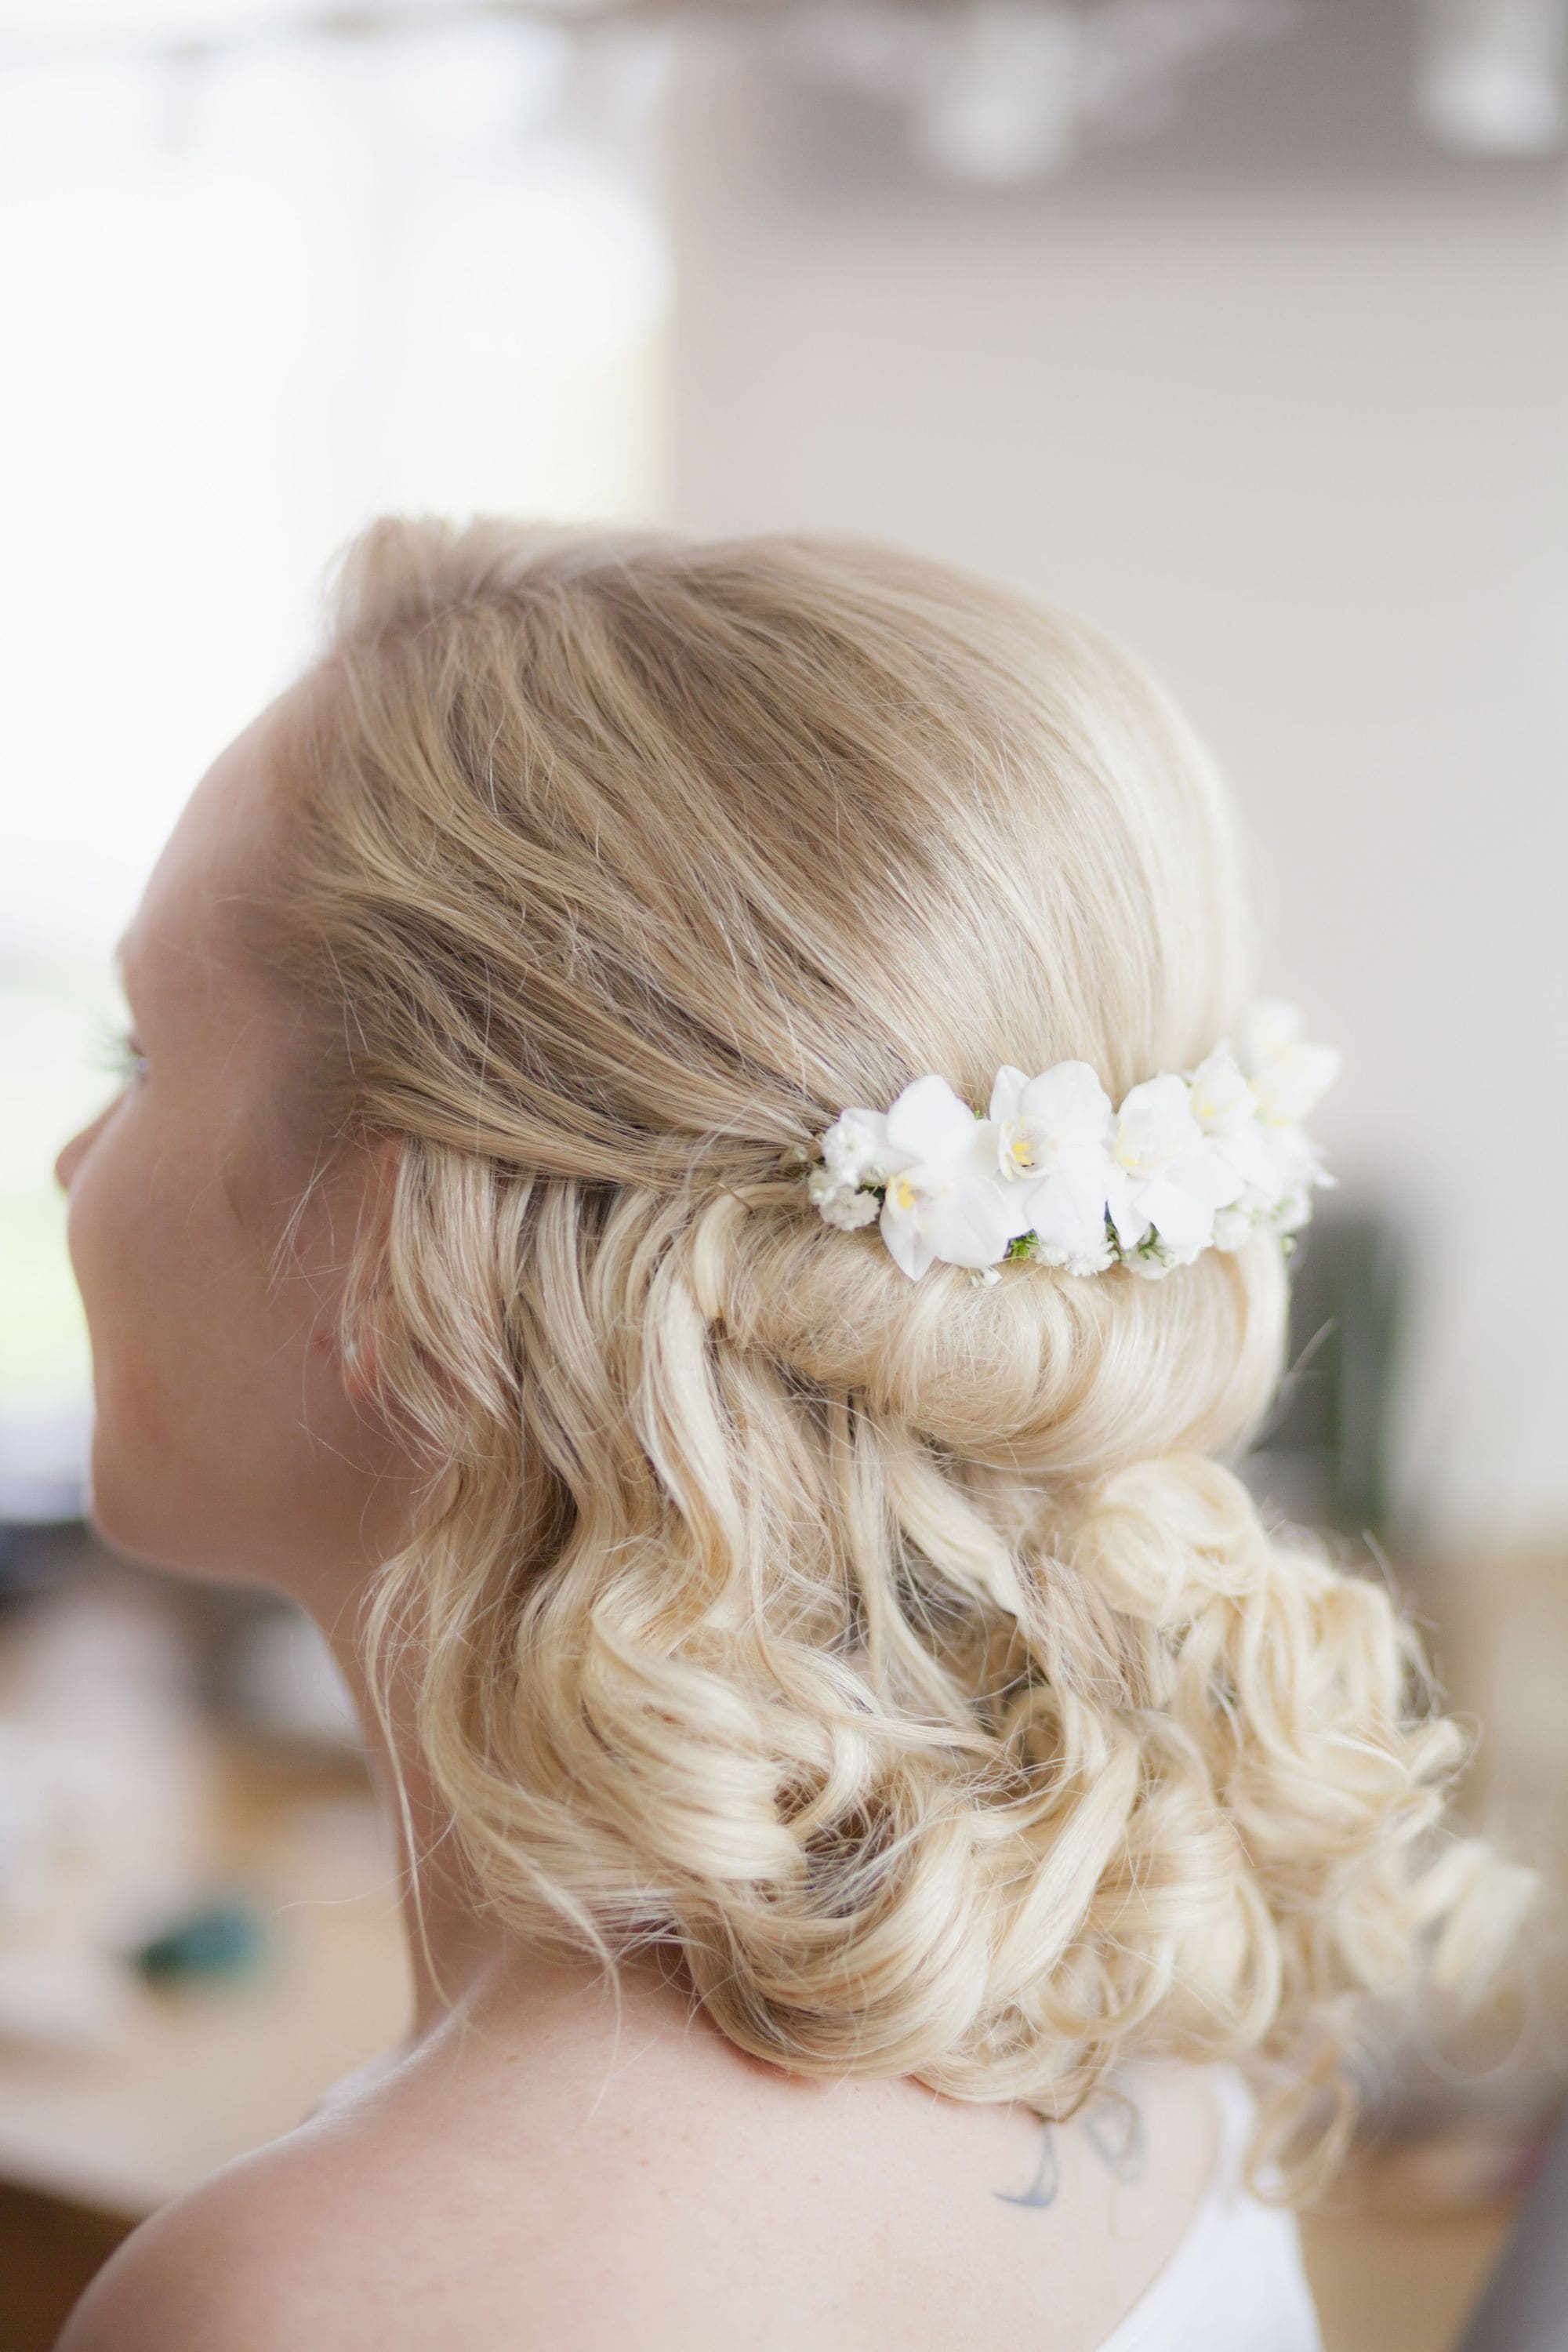 Curly wedding hair: Back view of a blonde bride with mid-length curled hair in a rolled half-updo with white flower accessories